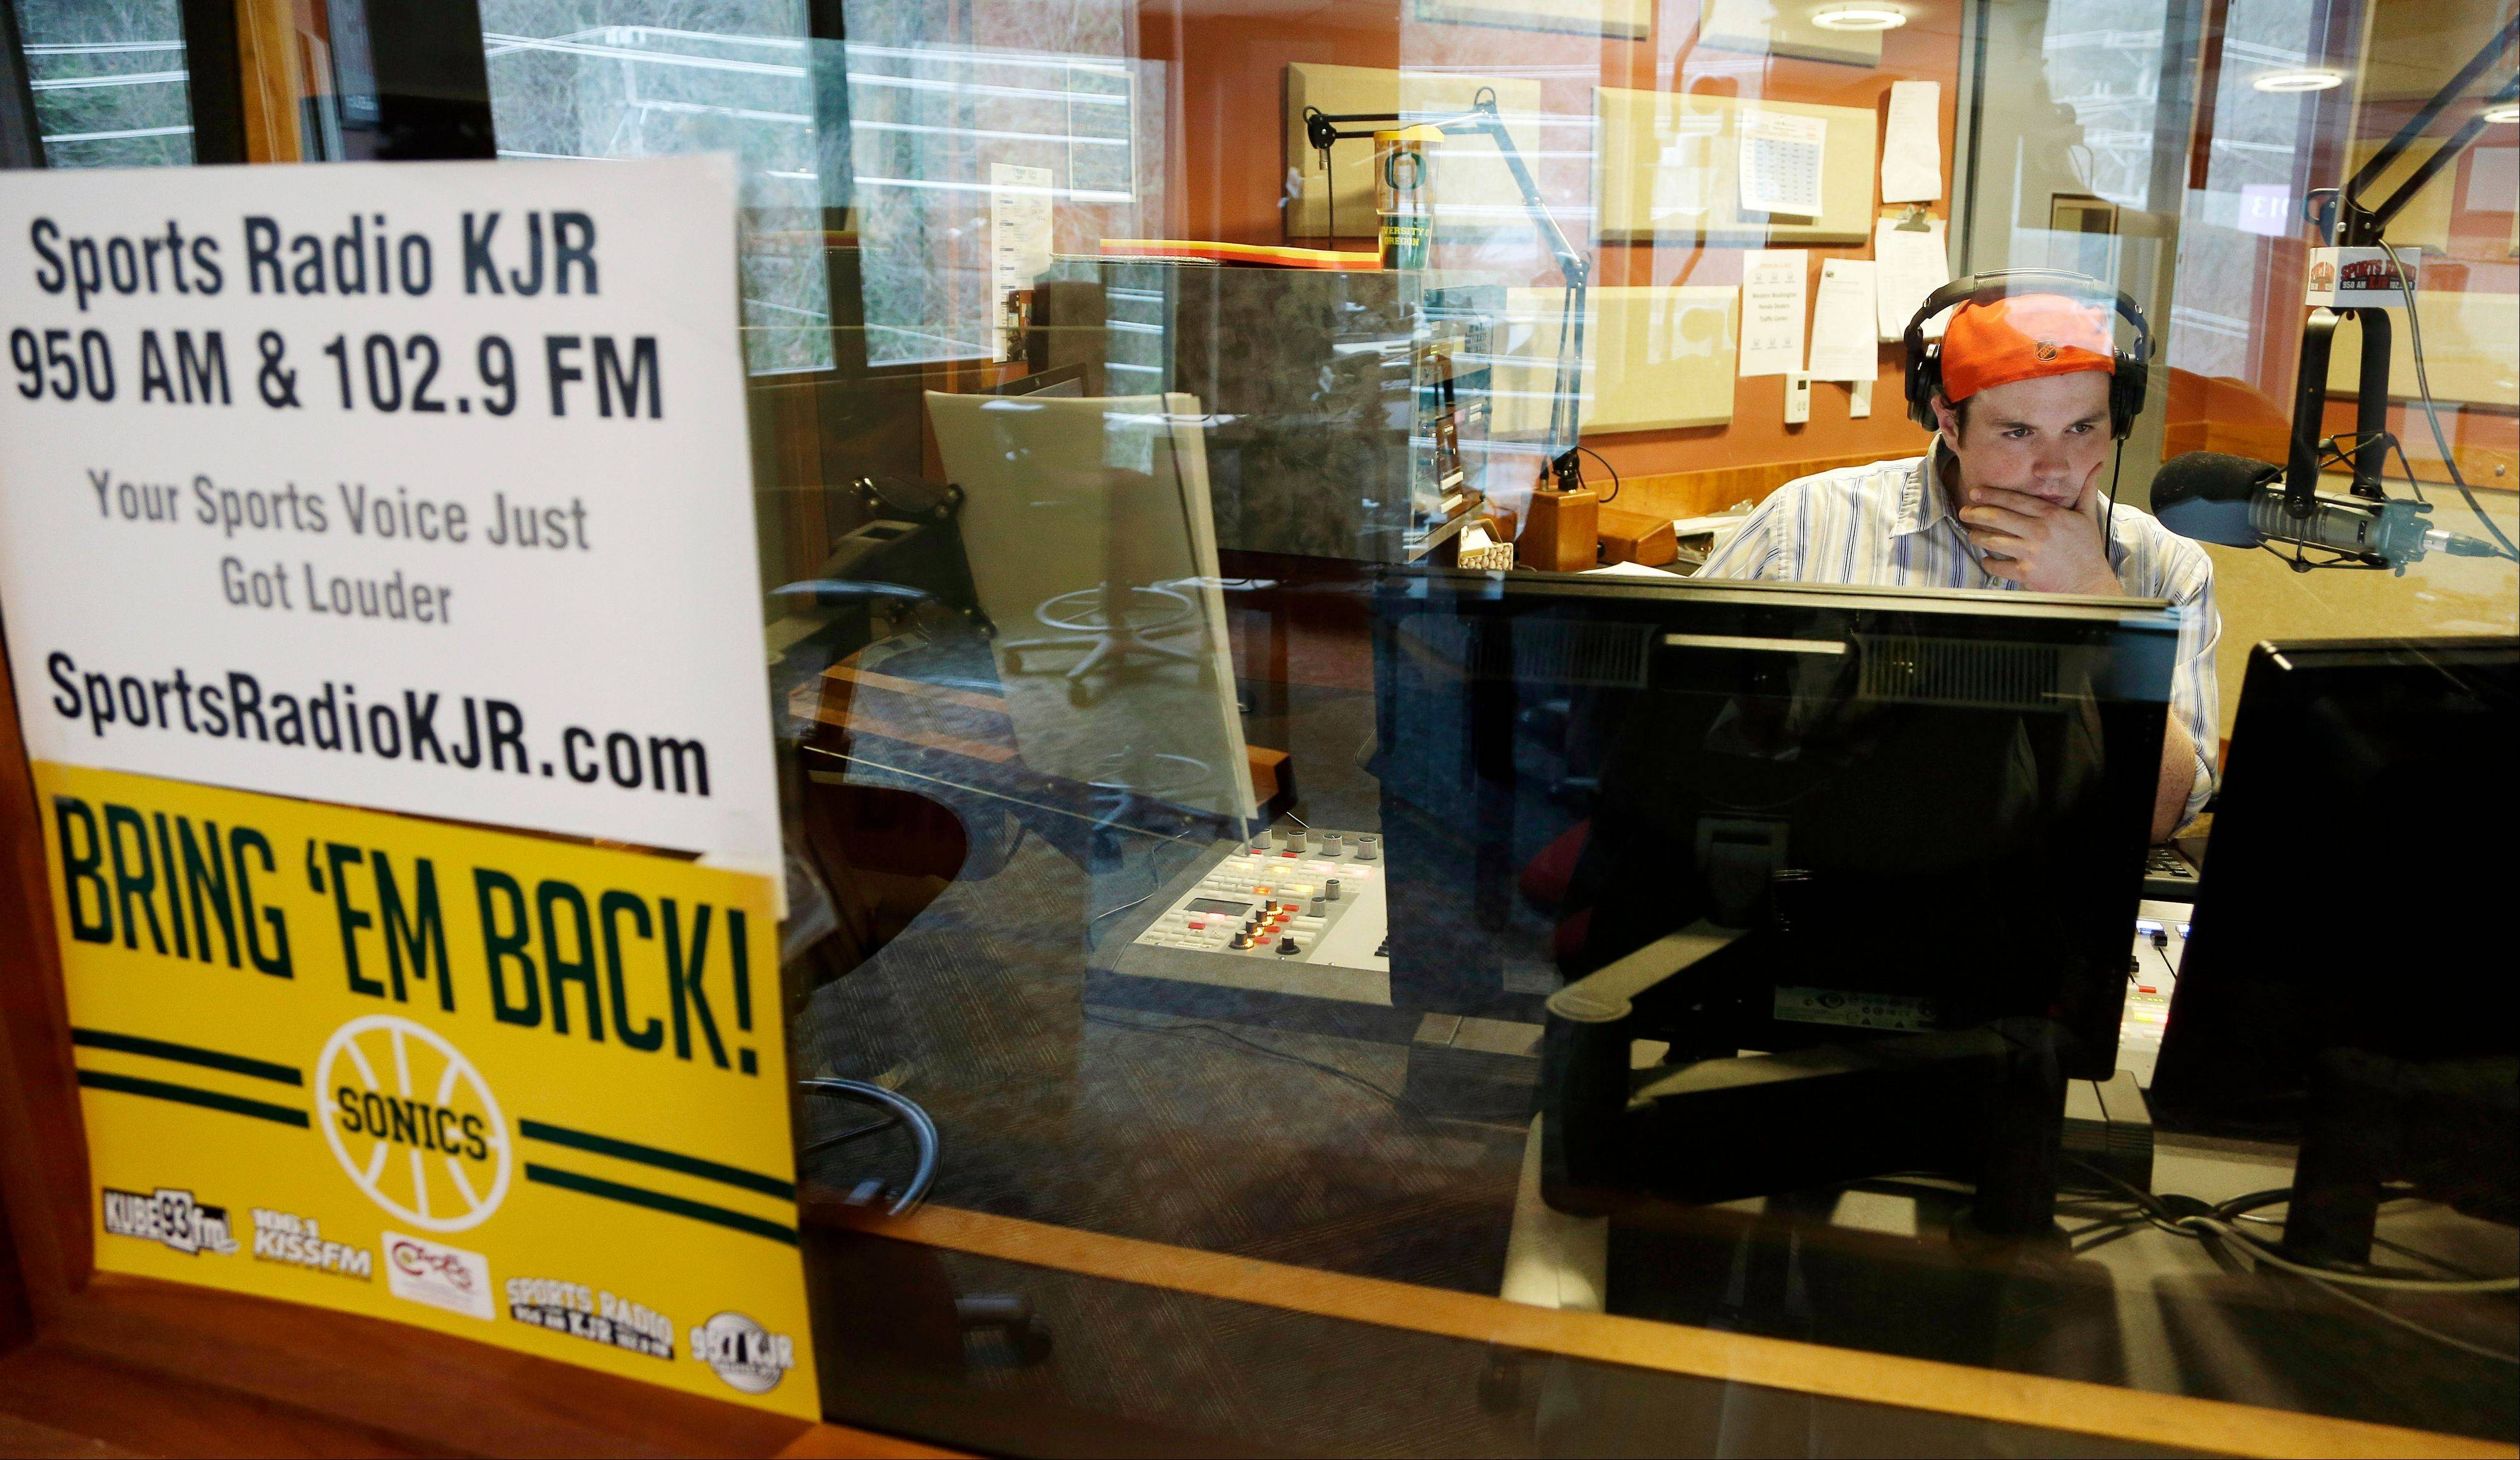 "Kevin Shockey, producer of the Ian Furness Show, works in a radio booth at sports radio station KJR in Seattle, Monday, Jan. 21, 2013, next to a sign that reads ""Bring 'Em Back!"" in reference to the Seattle SuperSonics NBA basketball team, which were sold and moved to Oklahoma City in 2008. Phone lines at the station were full as fans reacted to the news that the Maloof family, owners of the Sacramento Kings, had agreed to sell the team to a Seattle group led by investor Chris Hansen."